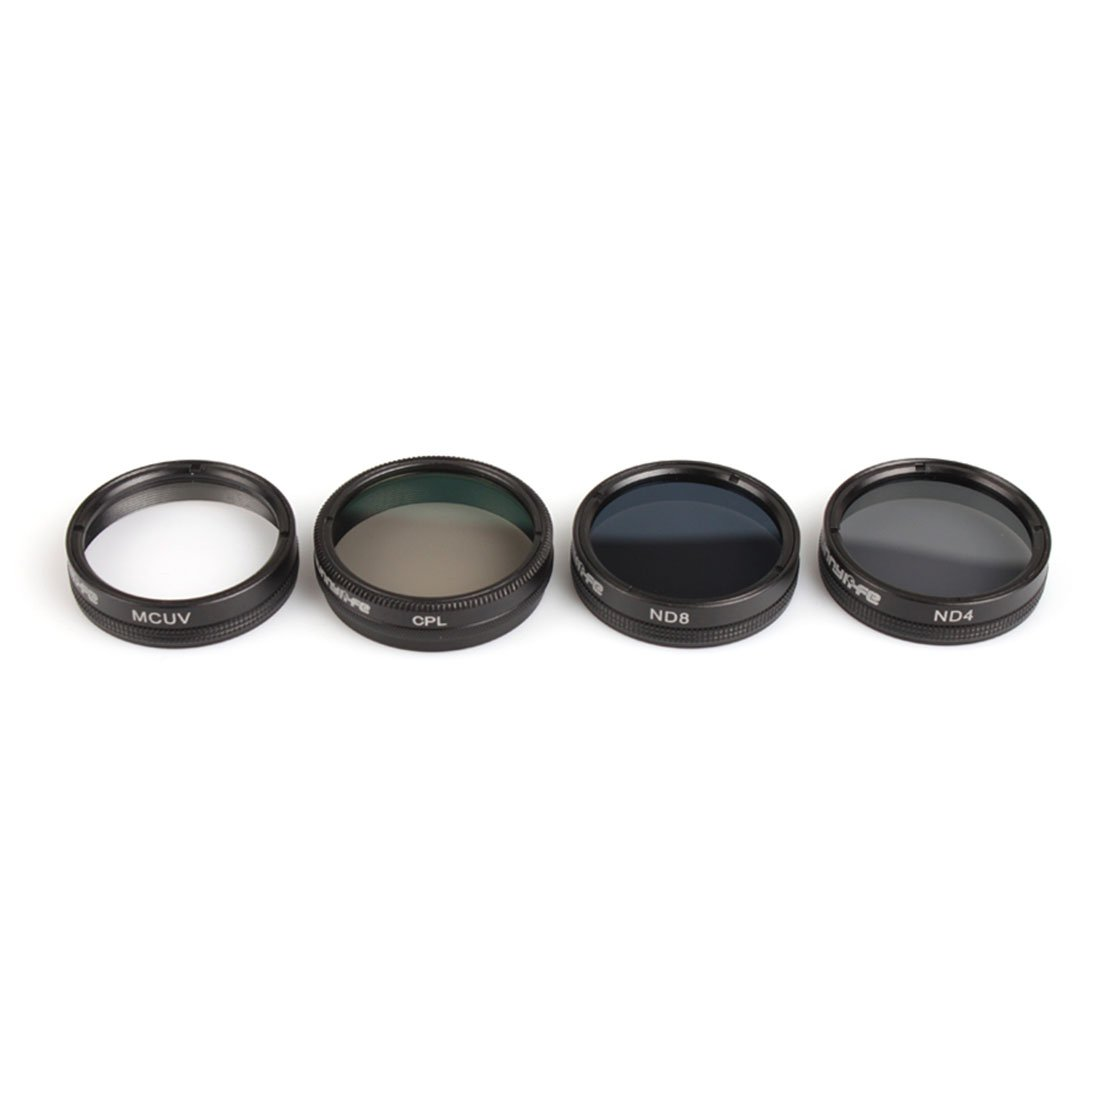 15000P Phantom Filter Set, Kamera Lens Filter CPL MCUV ND8 ND4 für DJI Phantom 4 Pro V2.0/Phantom 4 Pro+ V2.0